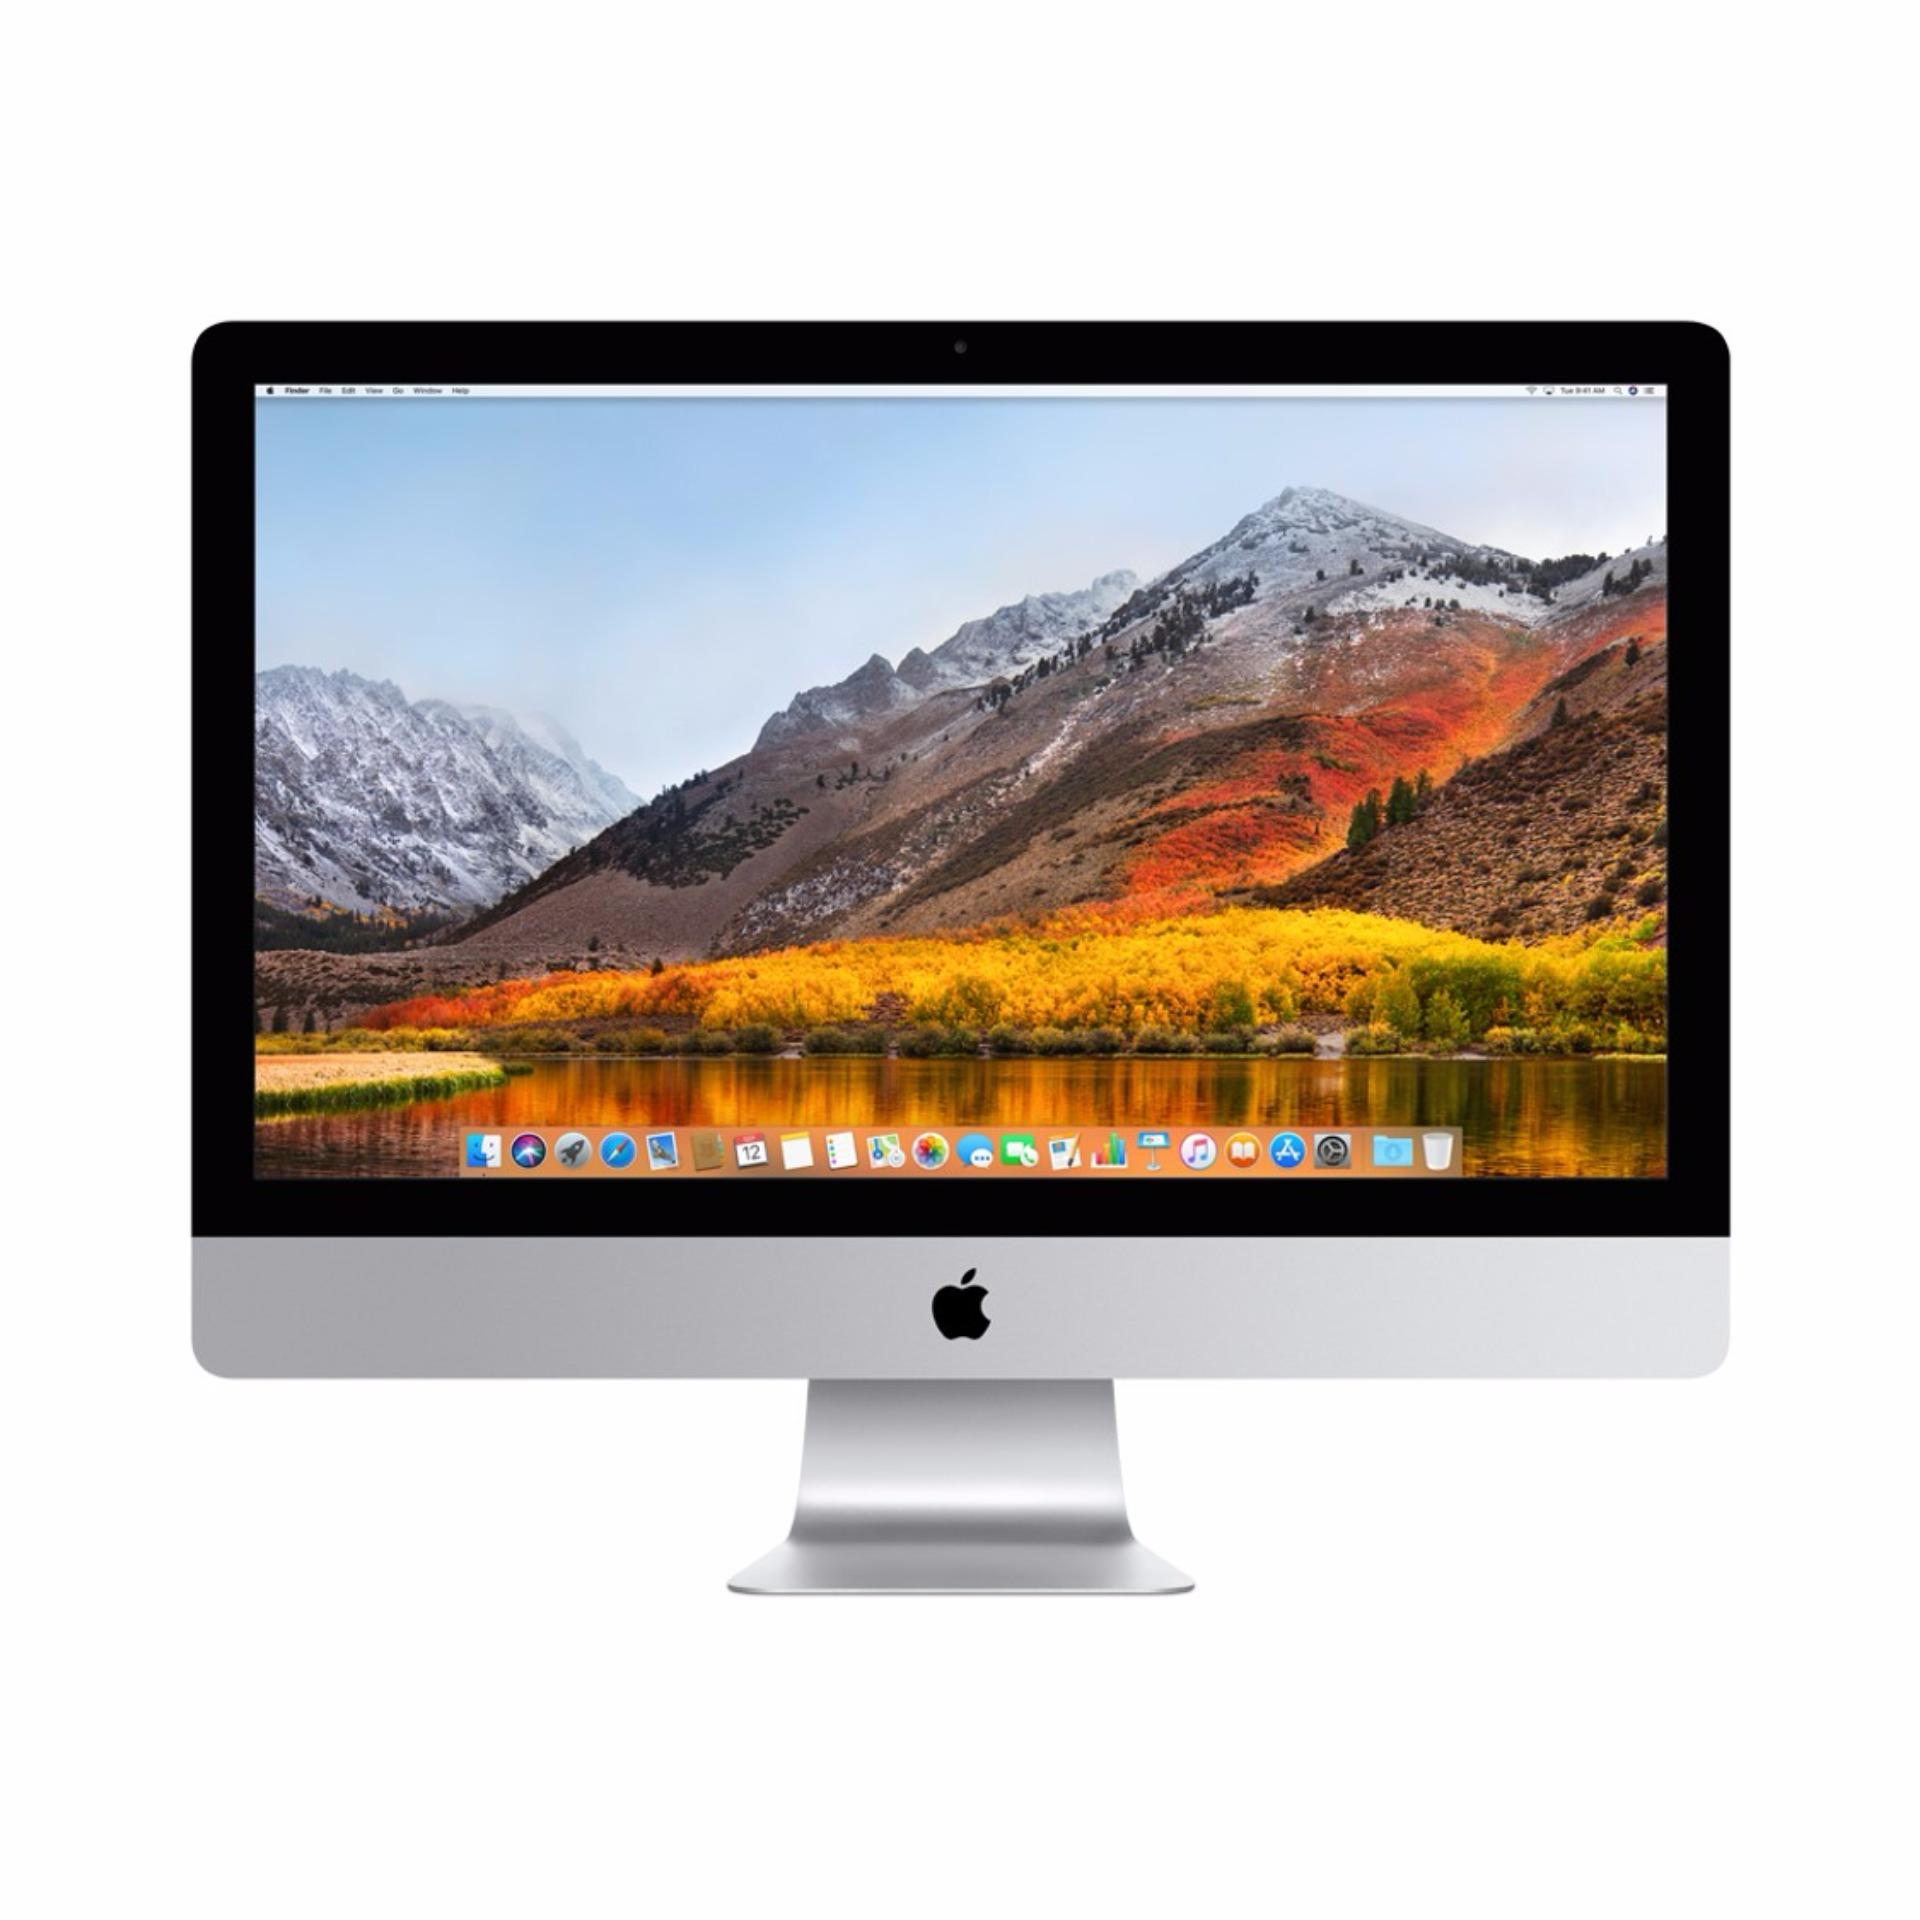 Apple iMac 27-inch with Retina 5K display: 3.4GHz quad-core Intel Core i5